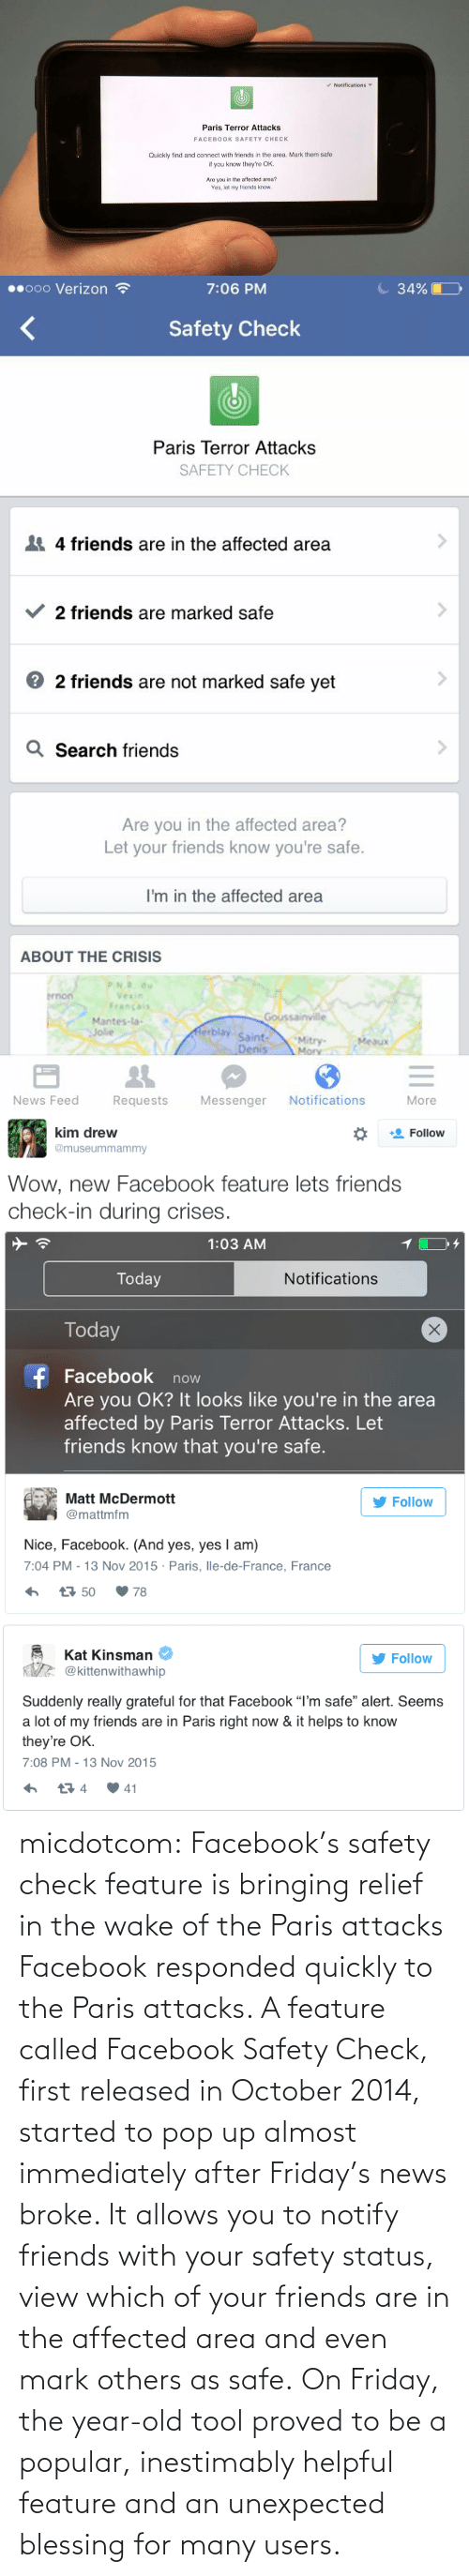 """Marked Safe: v Notifications  Paris Terror Attacks  FACEBOOK SAFETY CHECK  Quickly find and connect with friends in the area. Mark them safe  if you know they're OK.  Are you in the affected area?  Yes, let my friends know.   C 34% 